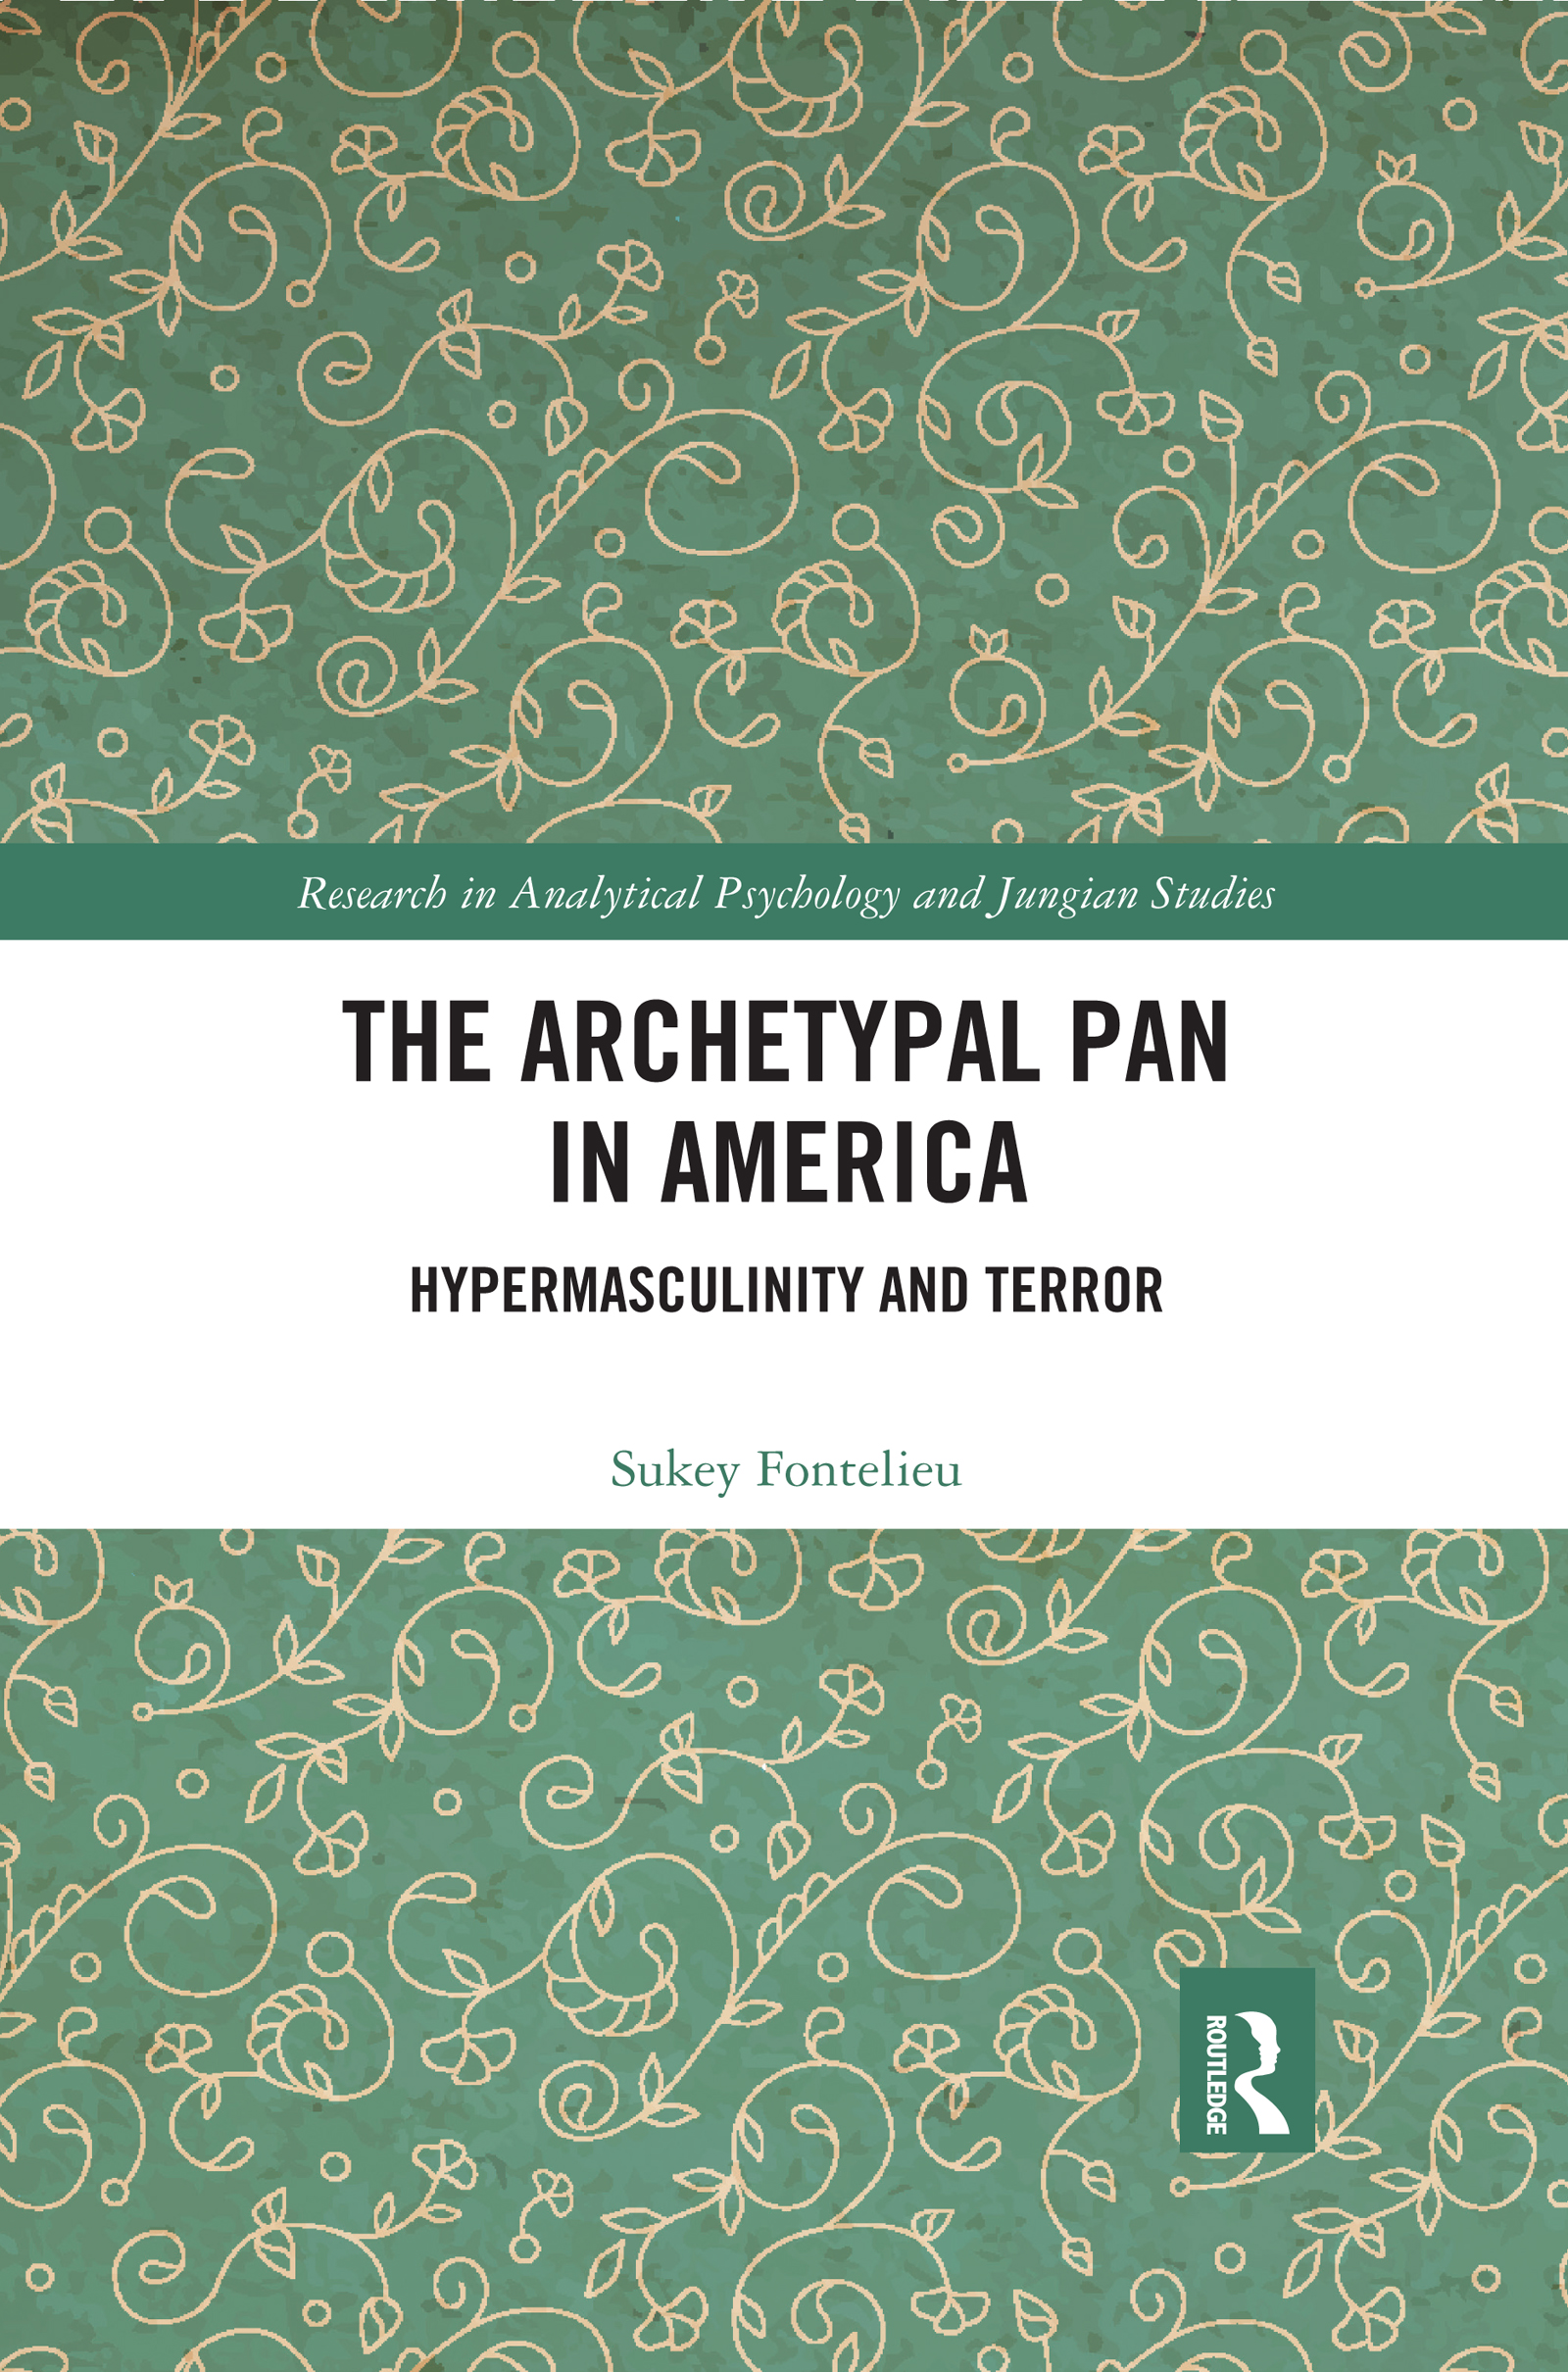 The Archetypal Pan in America